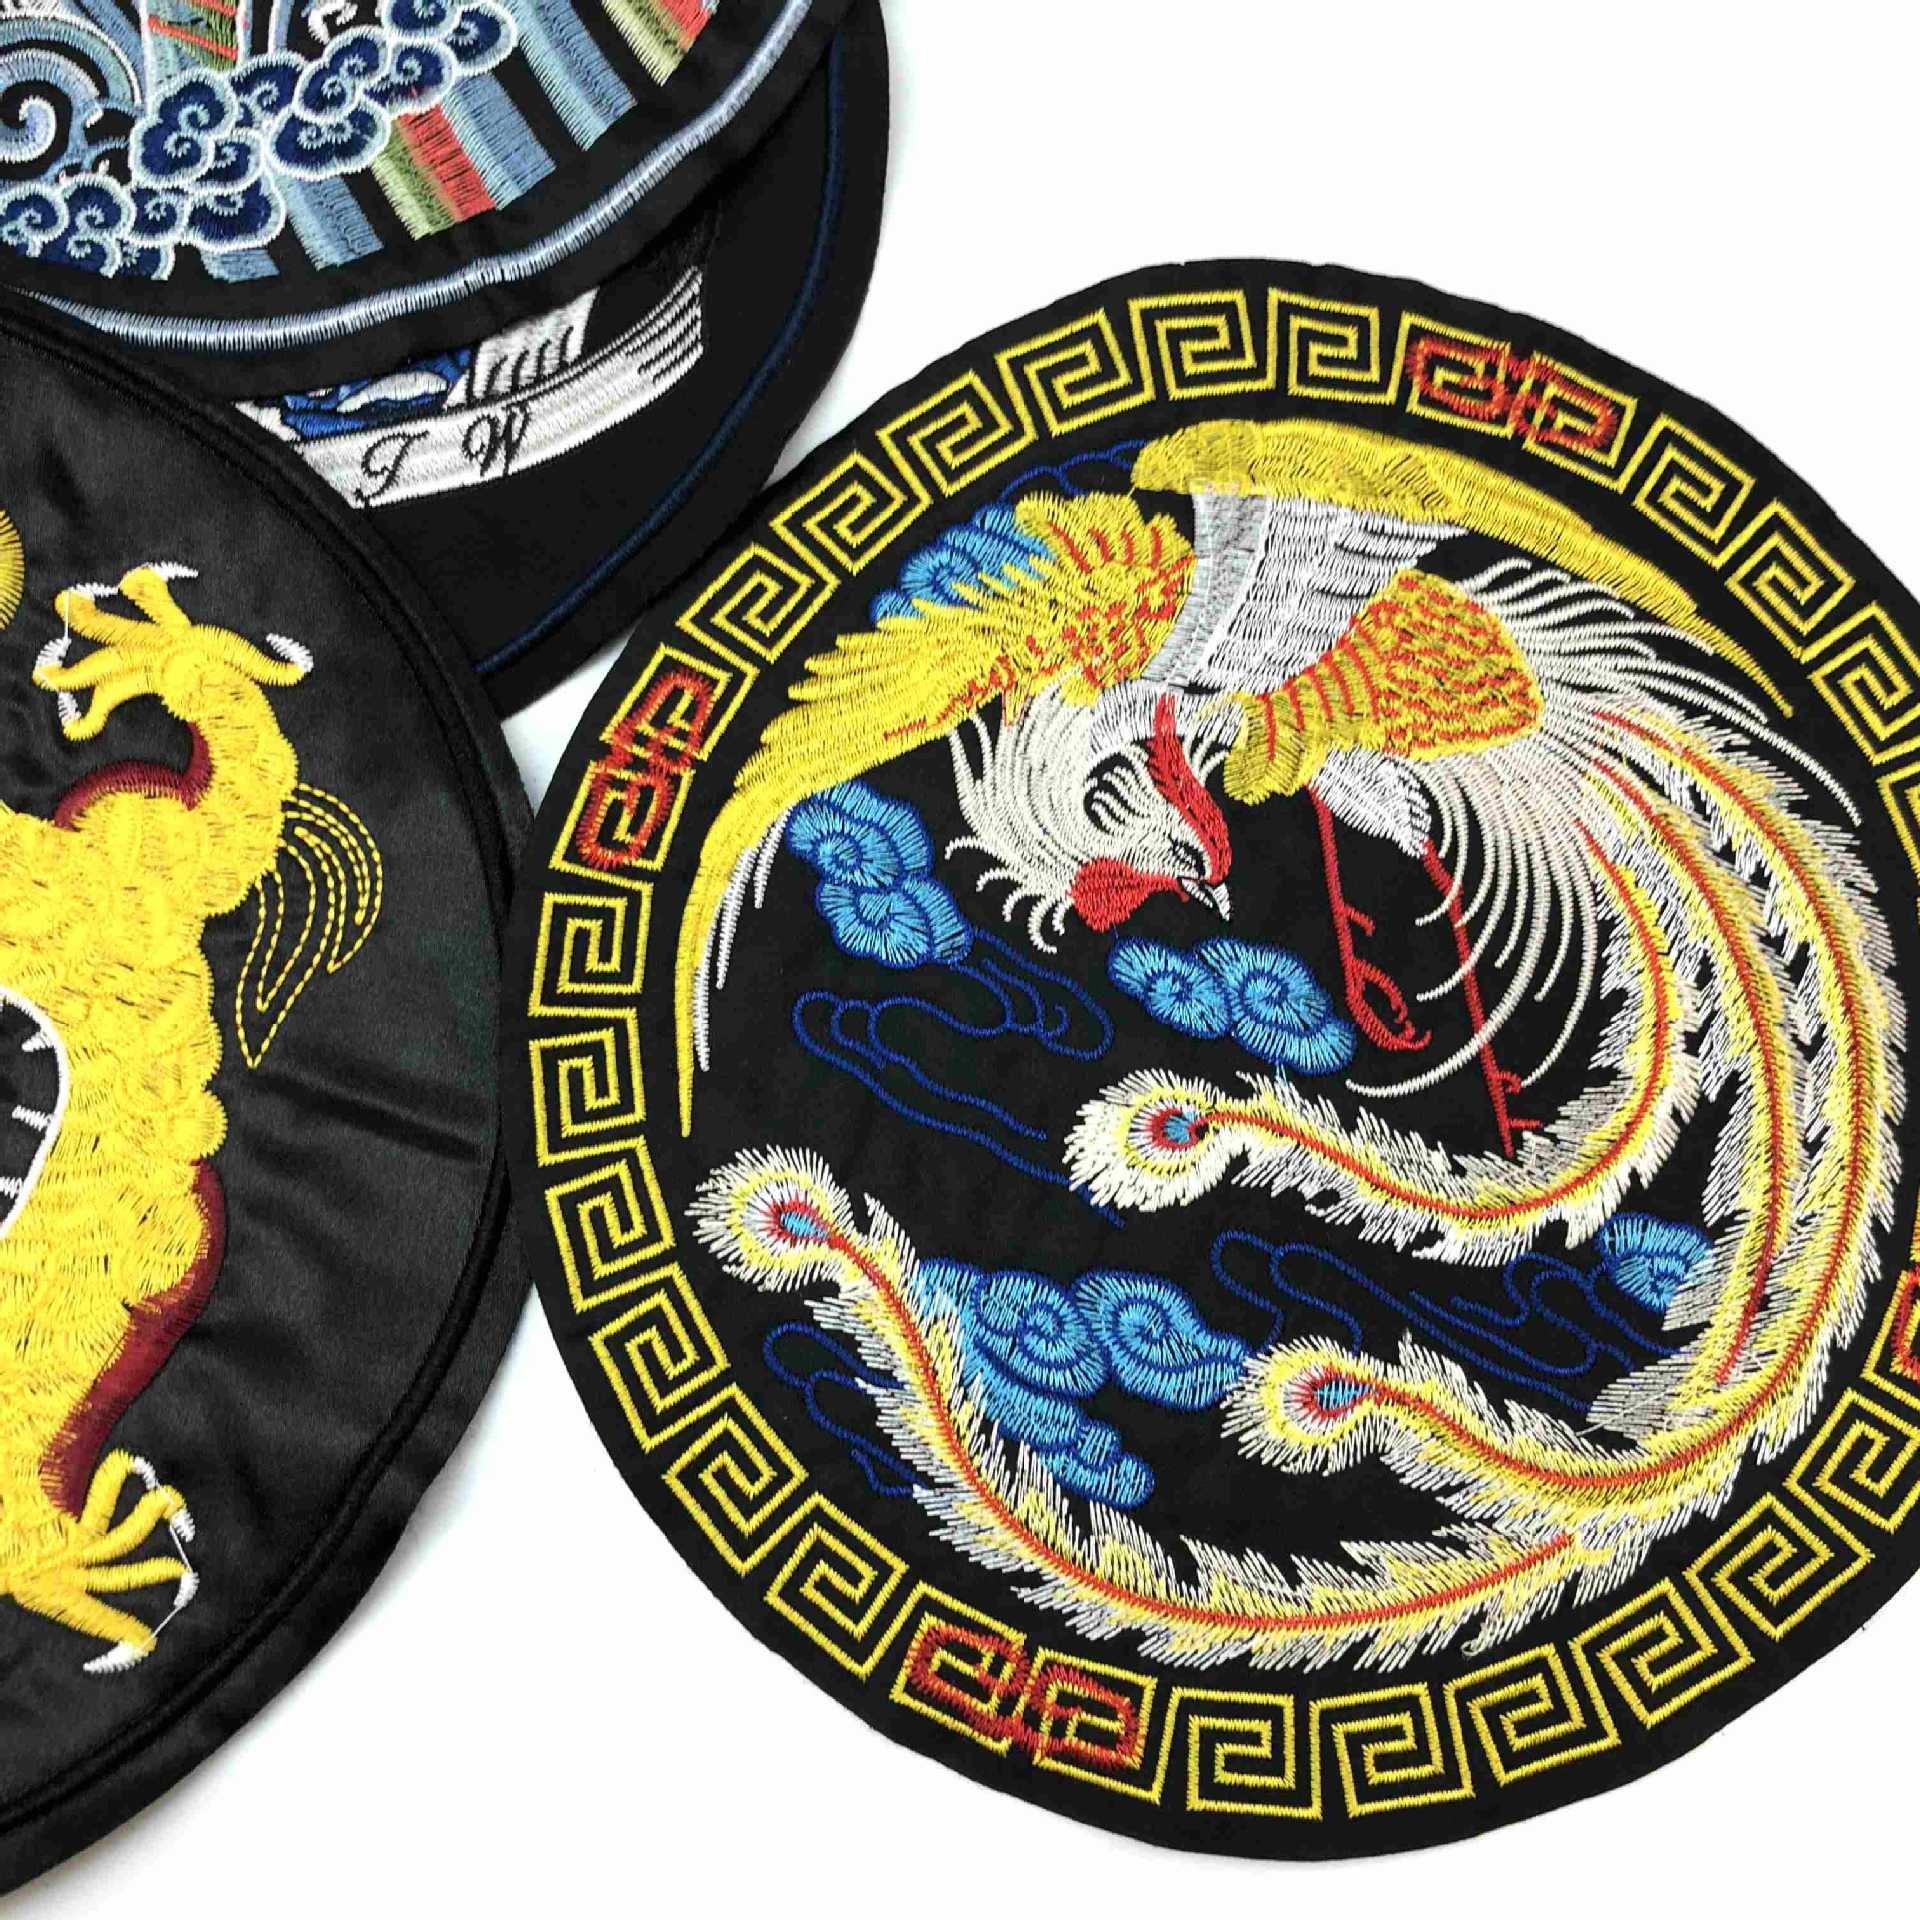 10 Pcs/lot Large Round  Chinese Dragon  Vintage Embroidery Patches Strange Things Clothing Decorals Accessories